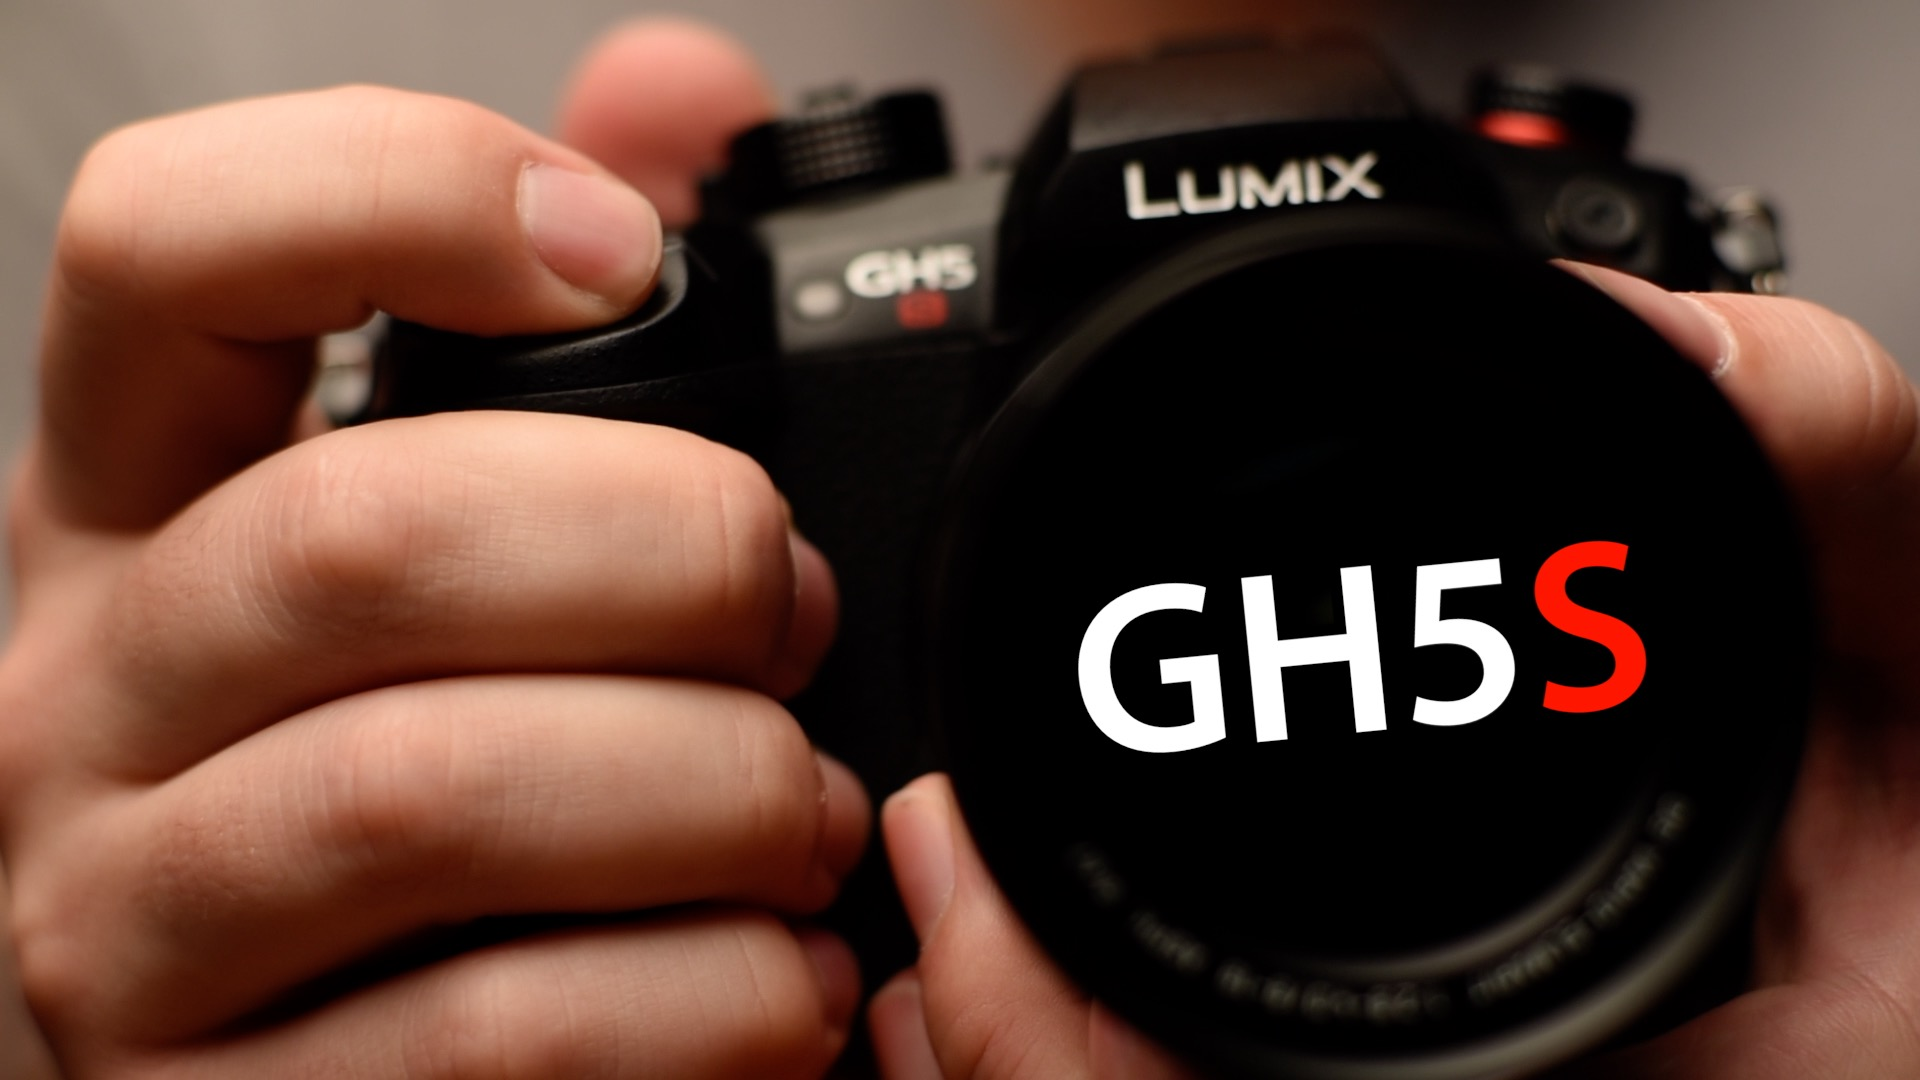 Handheld Panasonic GH5S Camera